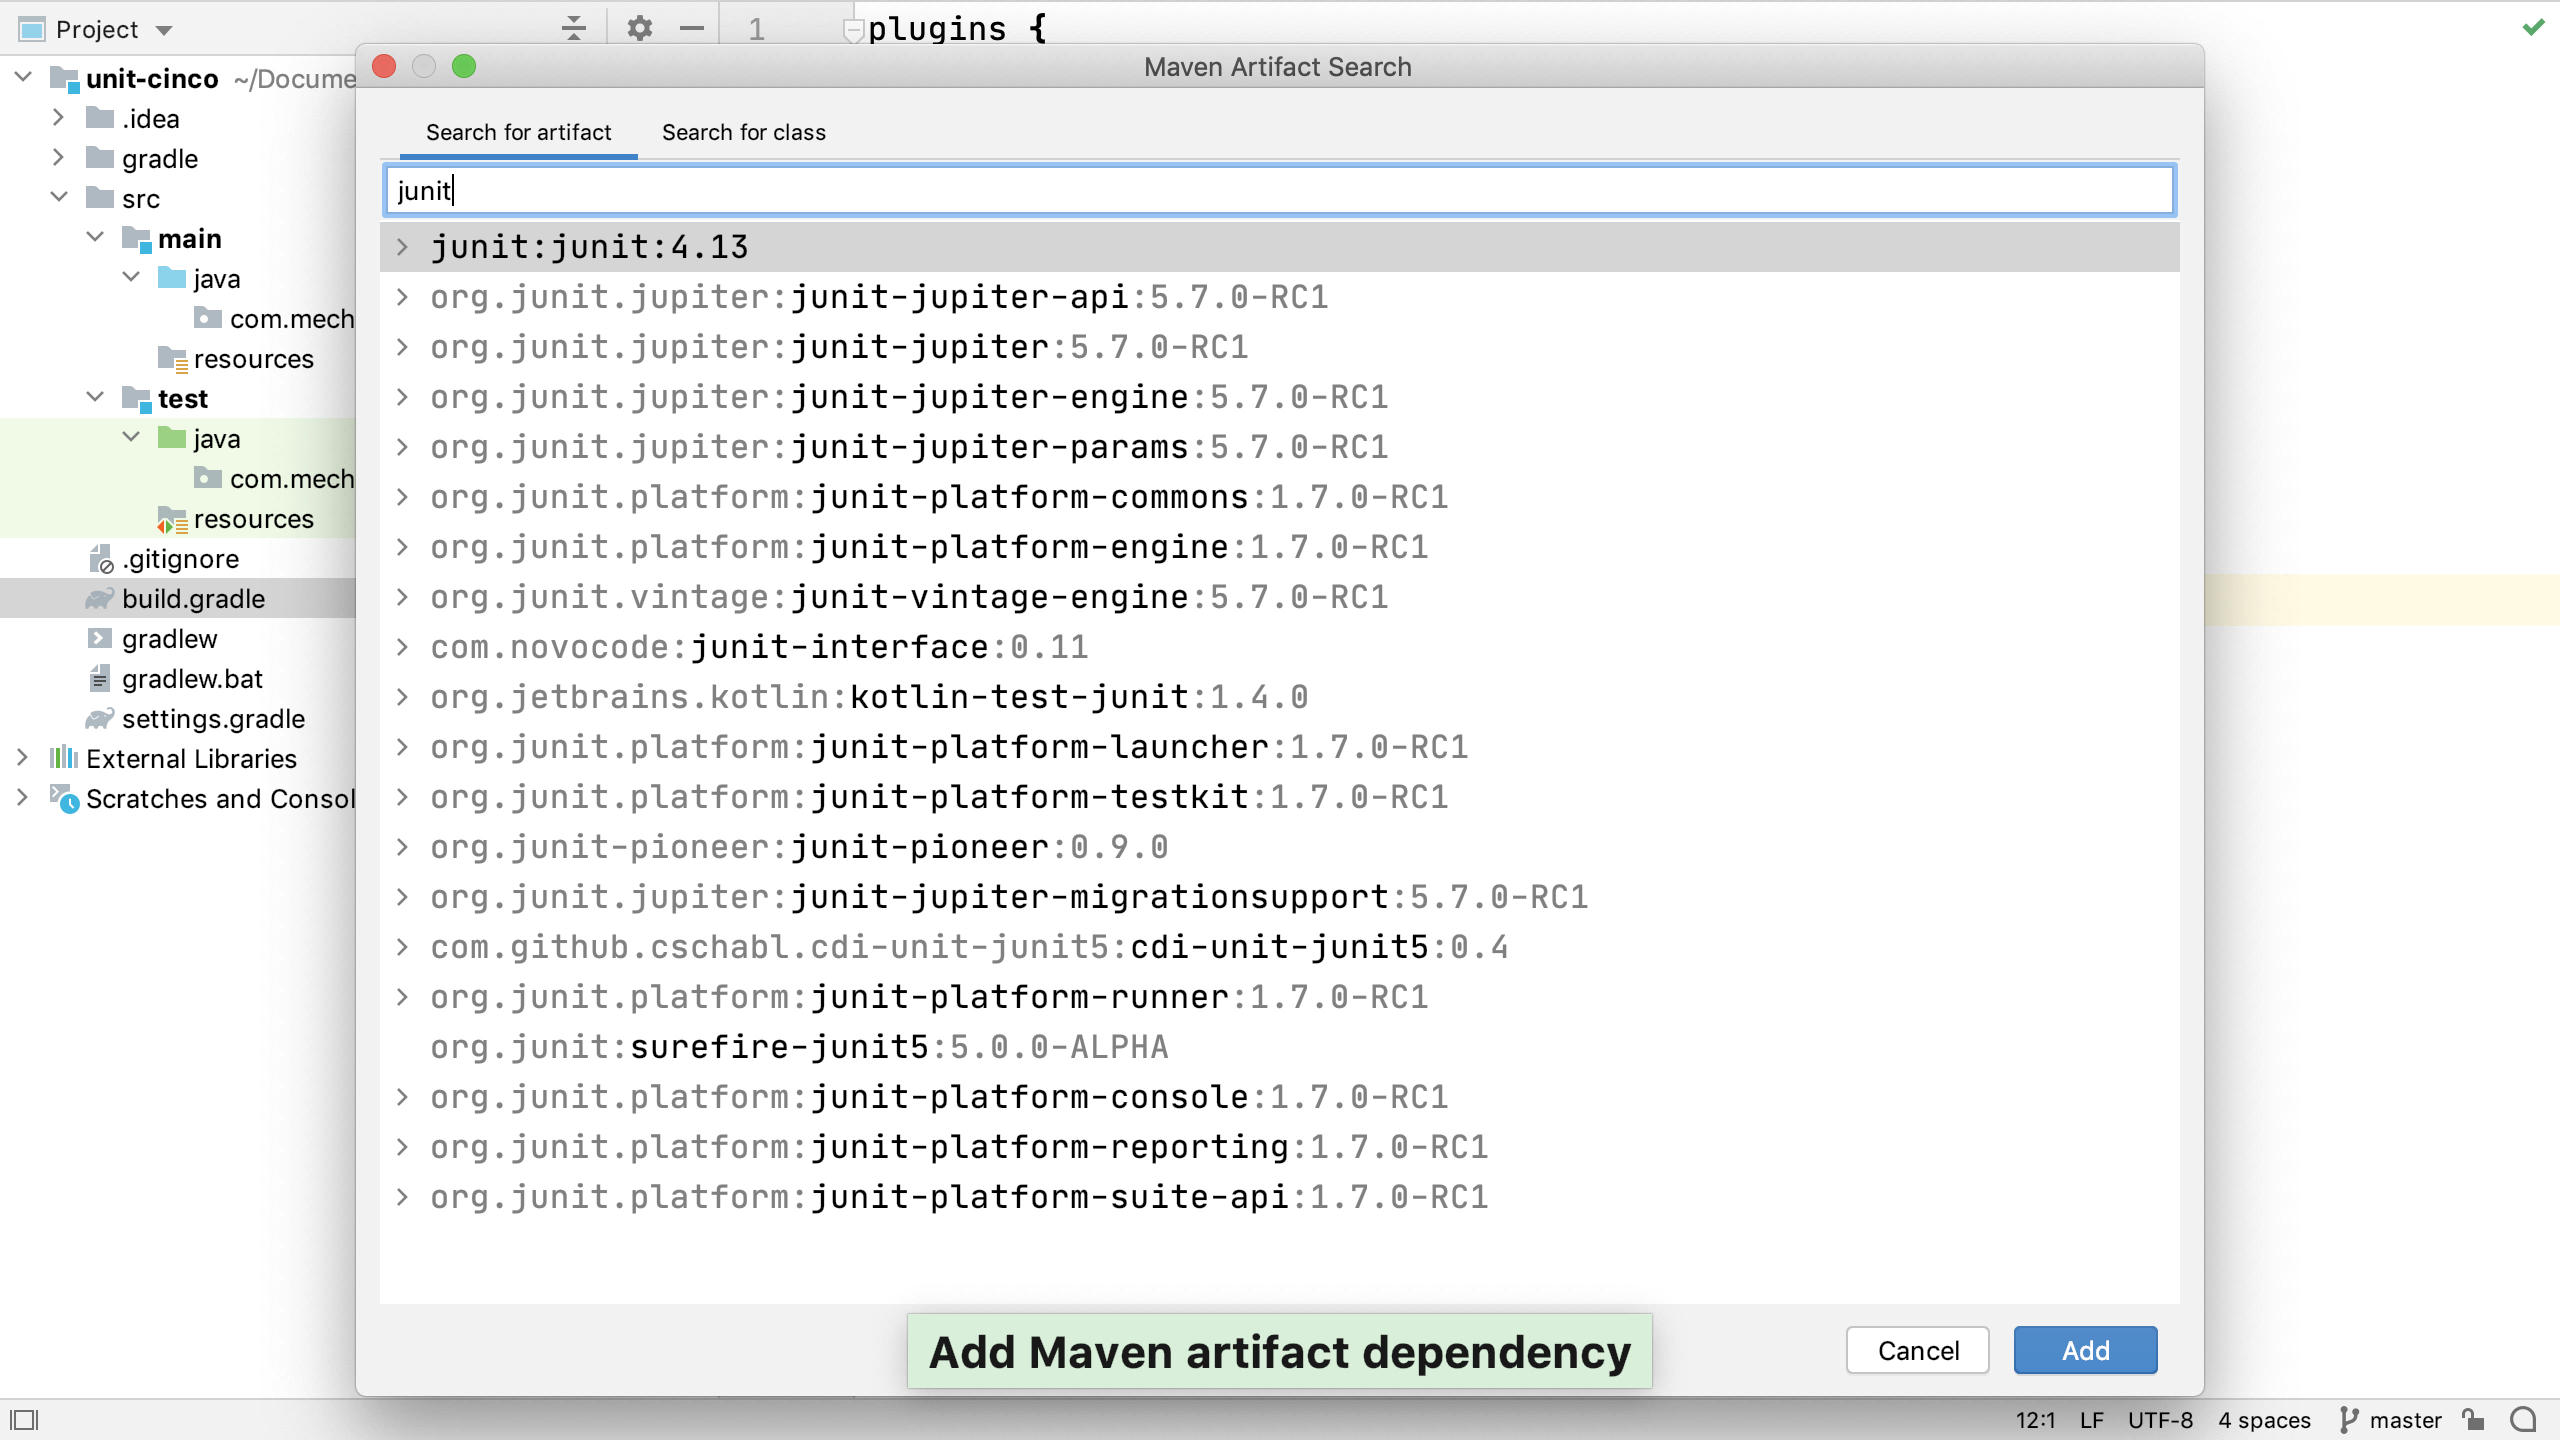 JUnit 5 dependencies